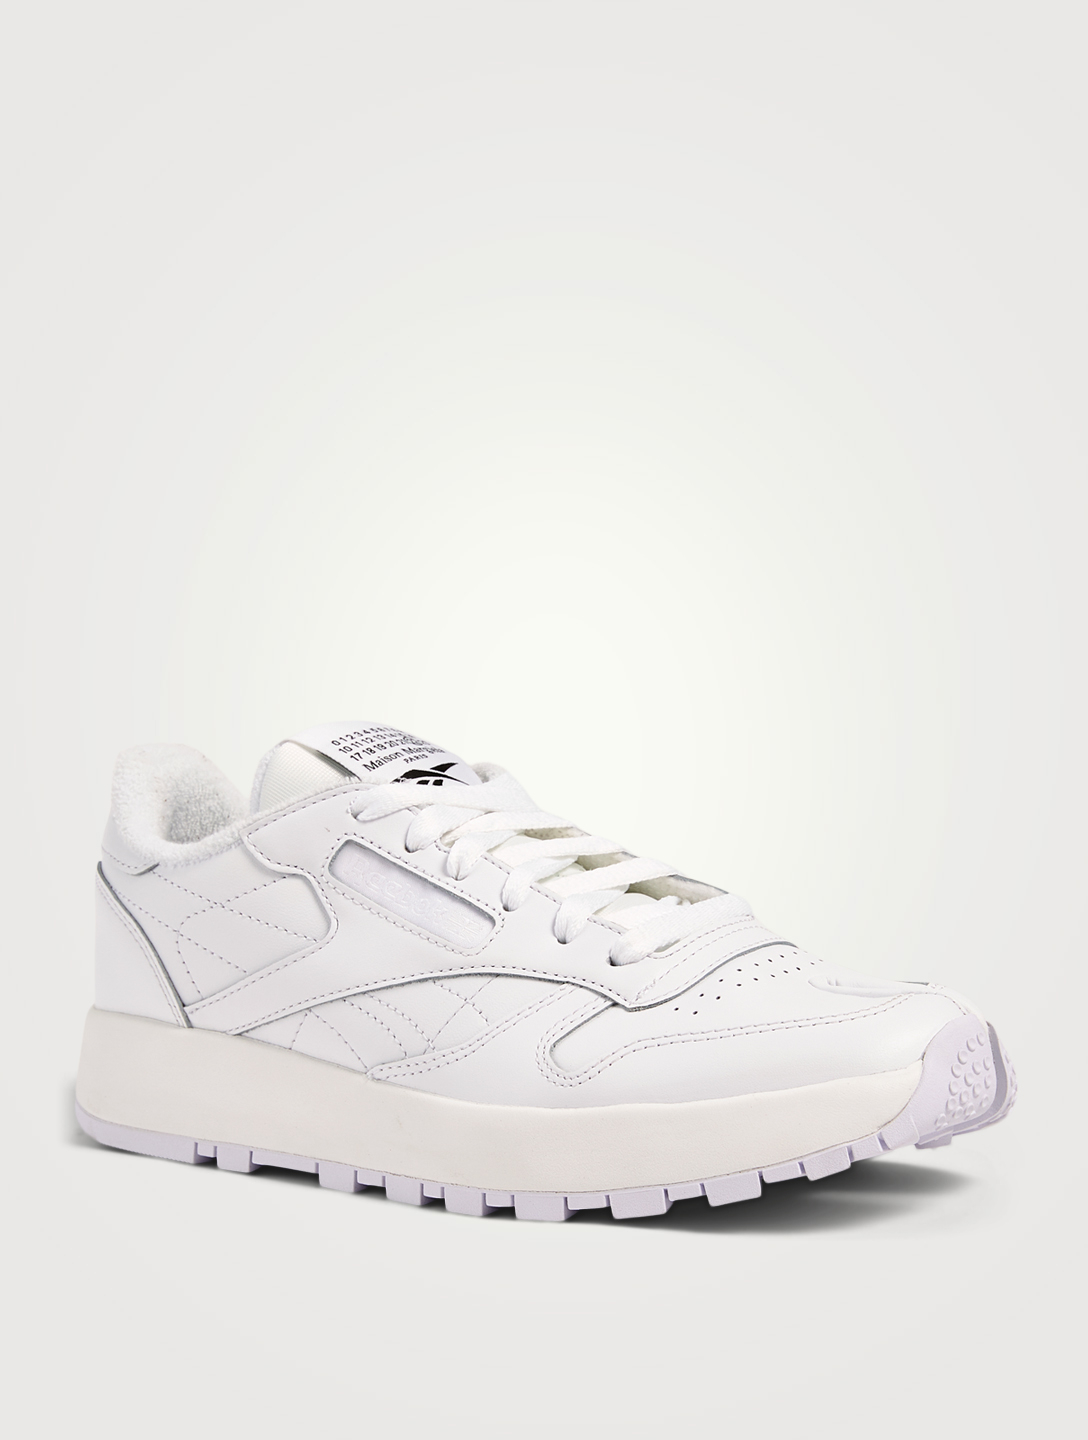 MAISON MARGIELA X REEBOK MAISON MARGIELA X REEBOK Project 0 CL Tabi Leather Sneakers Women's White